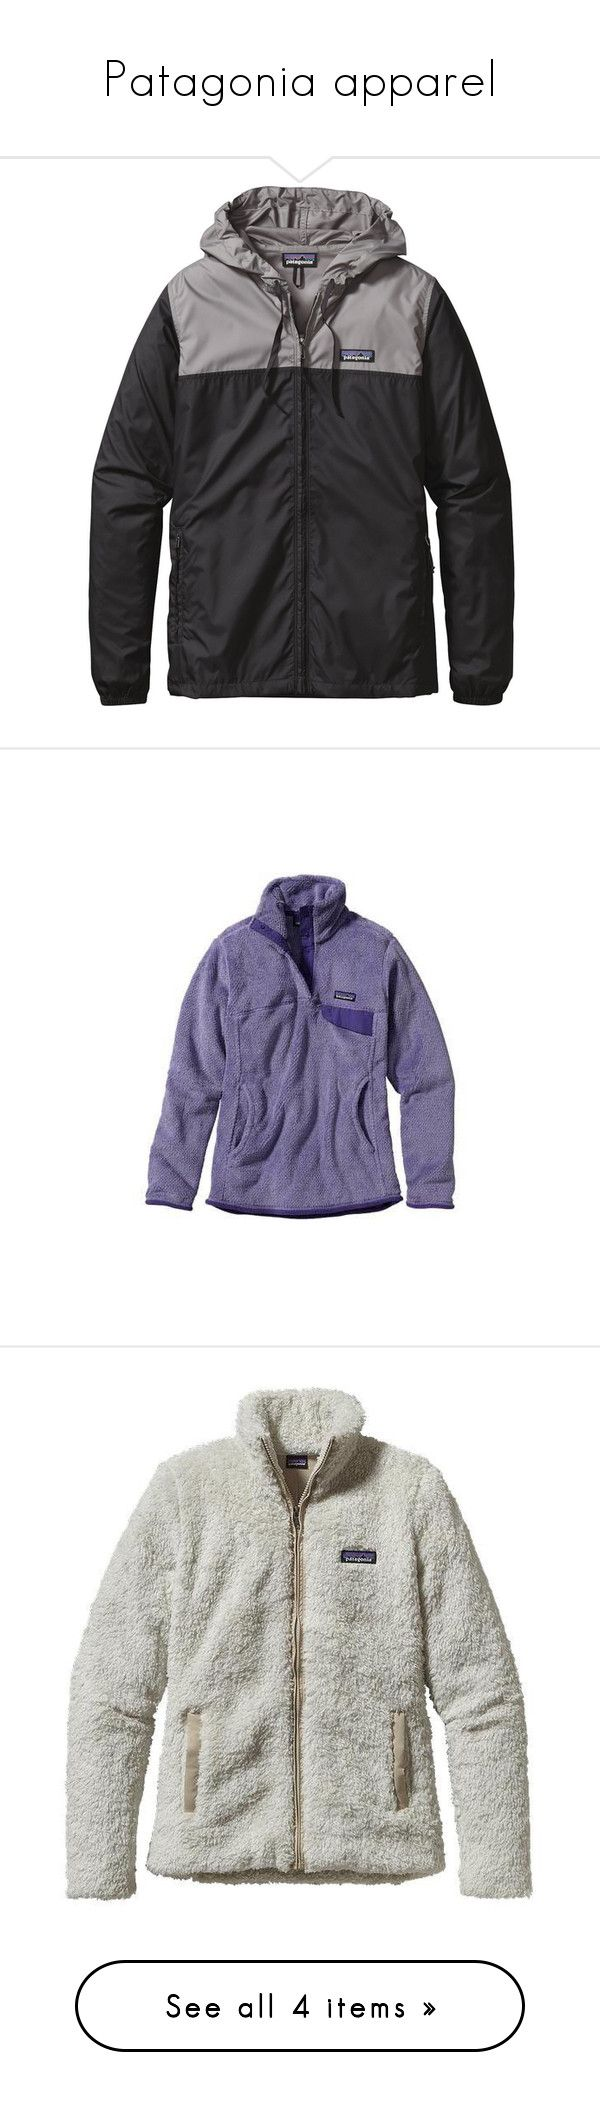 """Patagonia apparel"" by diamondmichelle19 ❤ liked on Polyvore featuring jackets, tops, outerwear, coats & jackets, patagonia, sweaters, prep jackets, purple, patagonia pullover and thermal sweater"